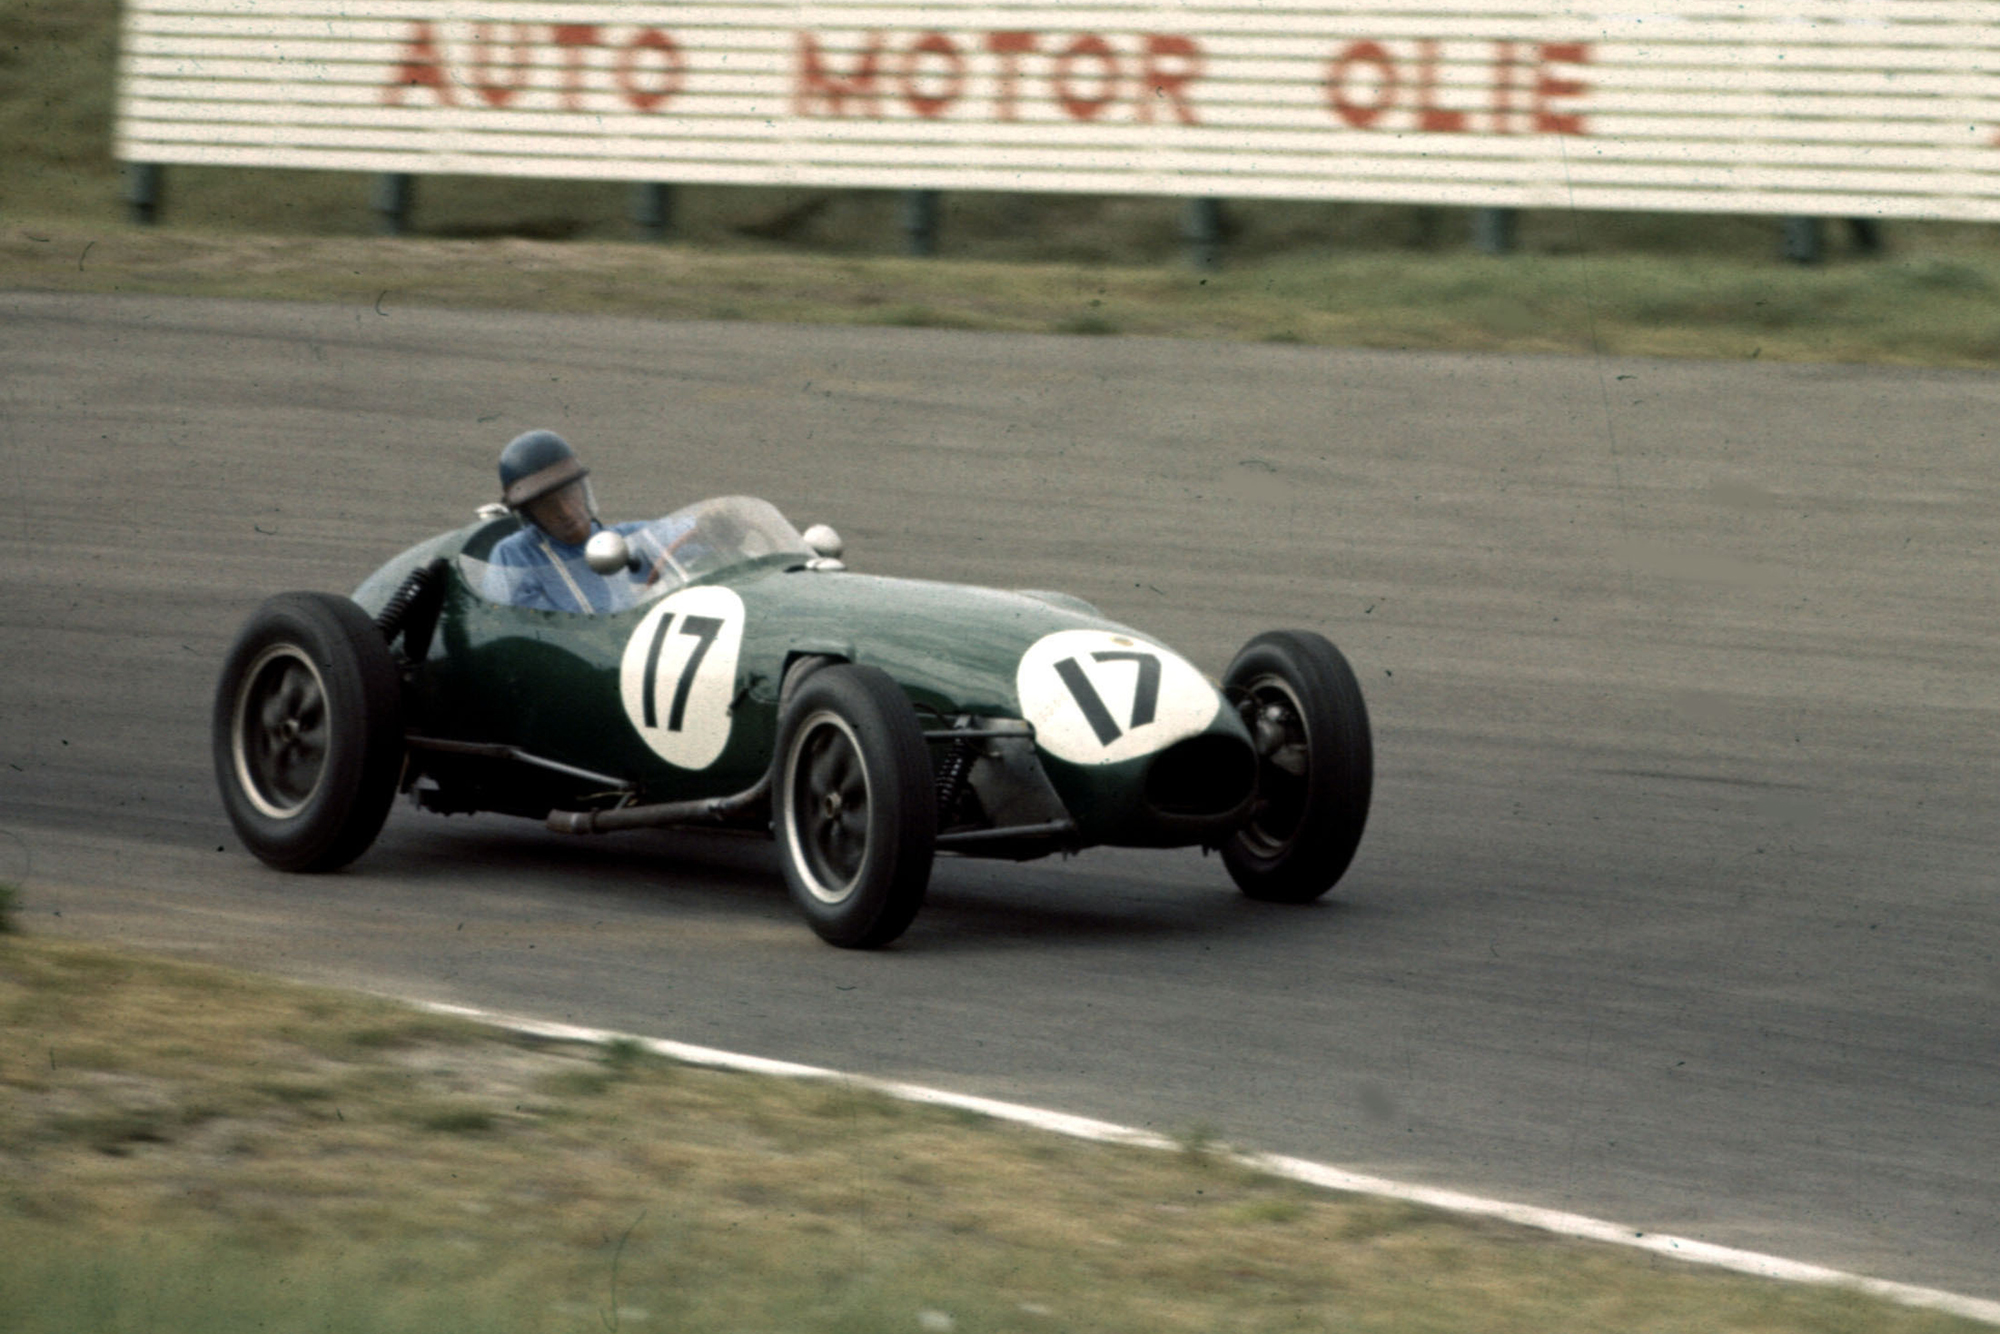 6th place finisher Cliff Allison in a Lotus 12-Climax